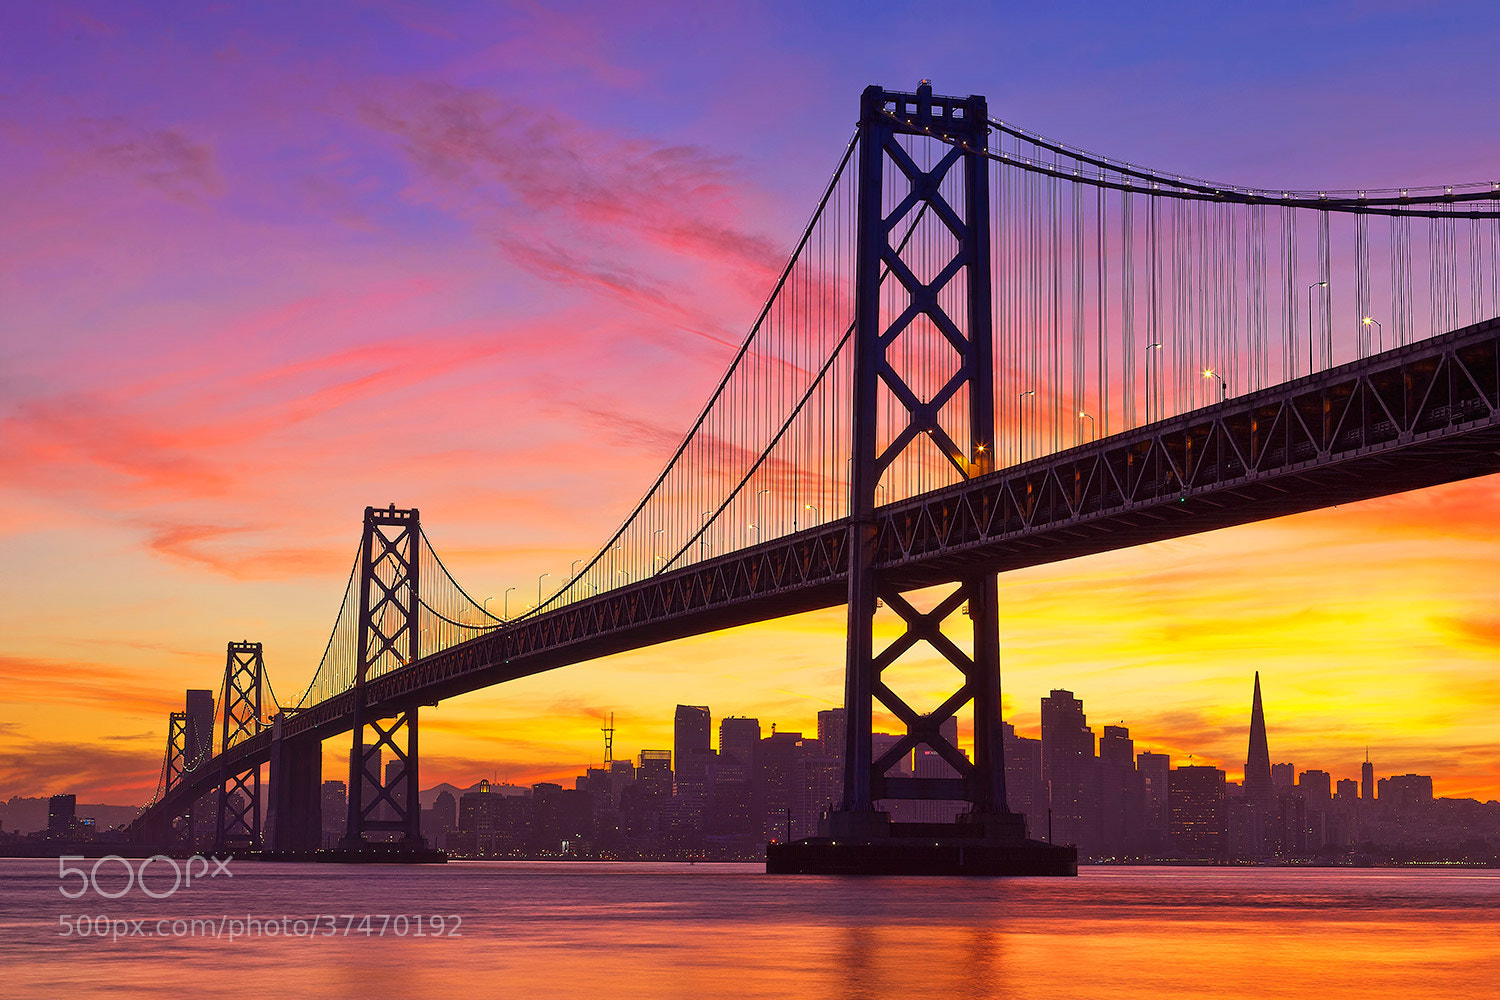 Photograph Sunset on the Bay by Paul Reiffer on 500px